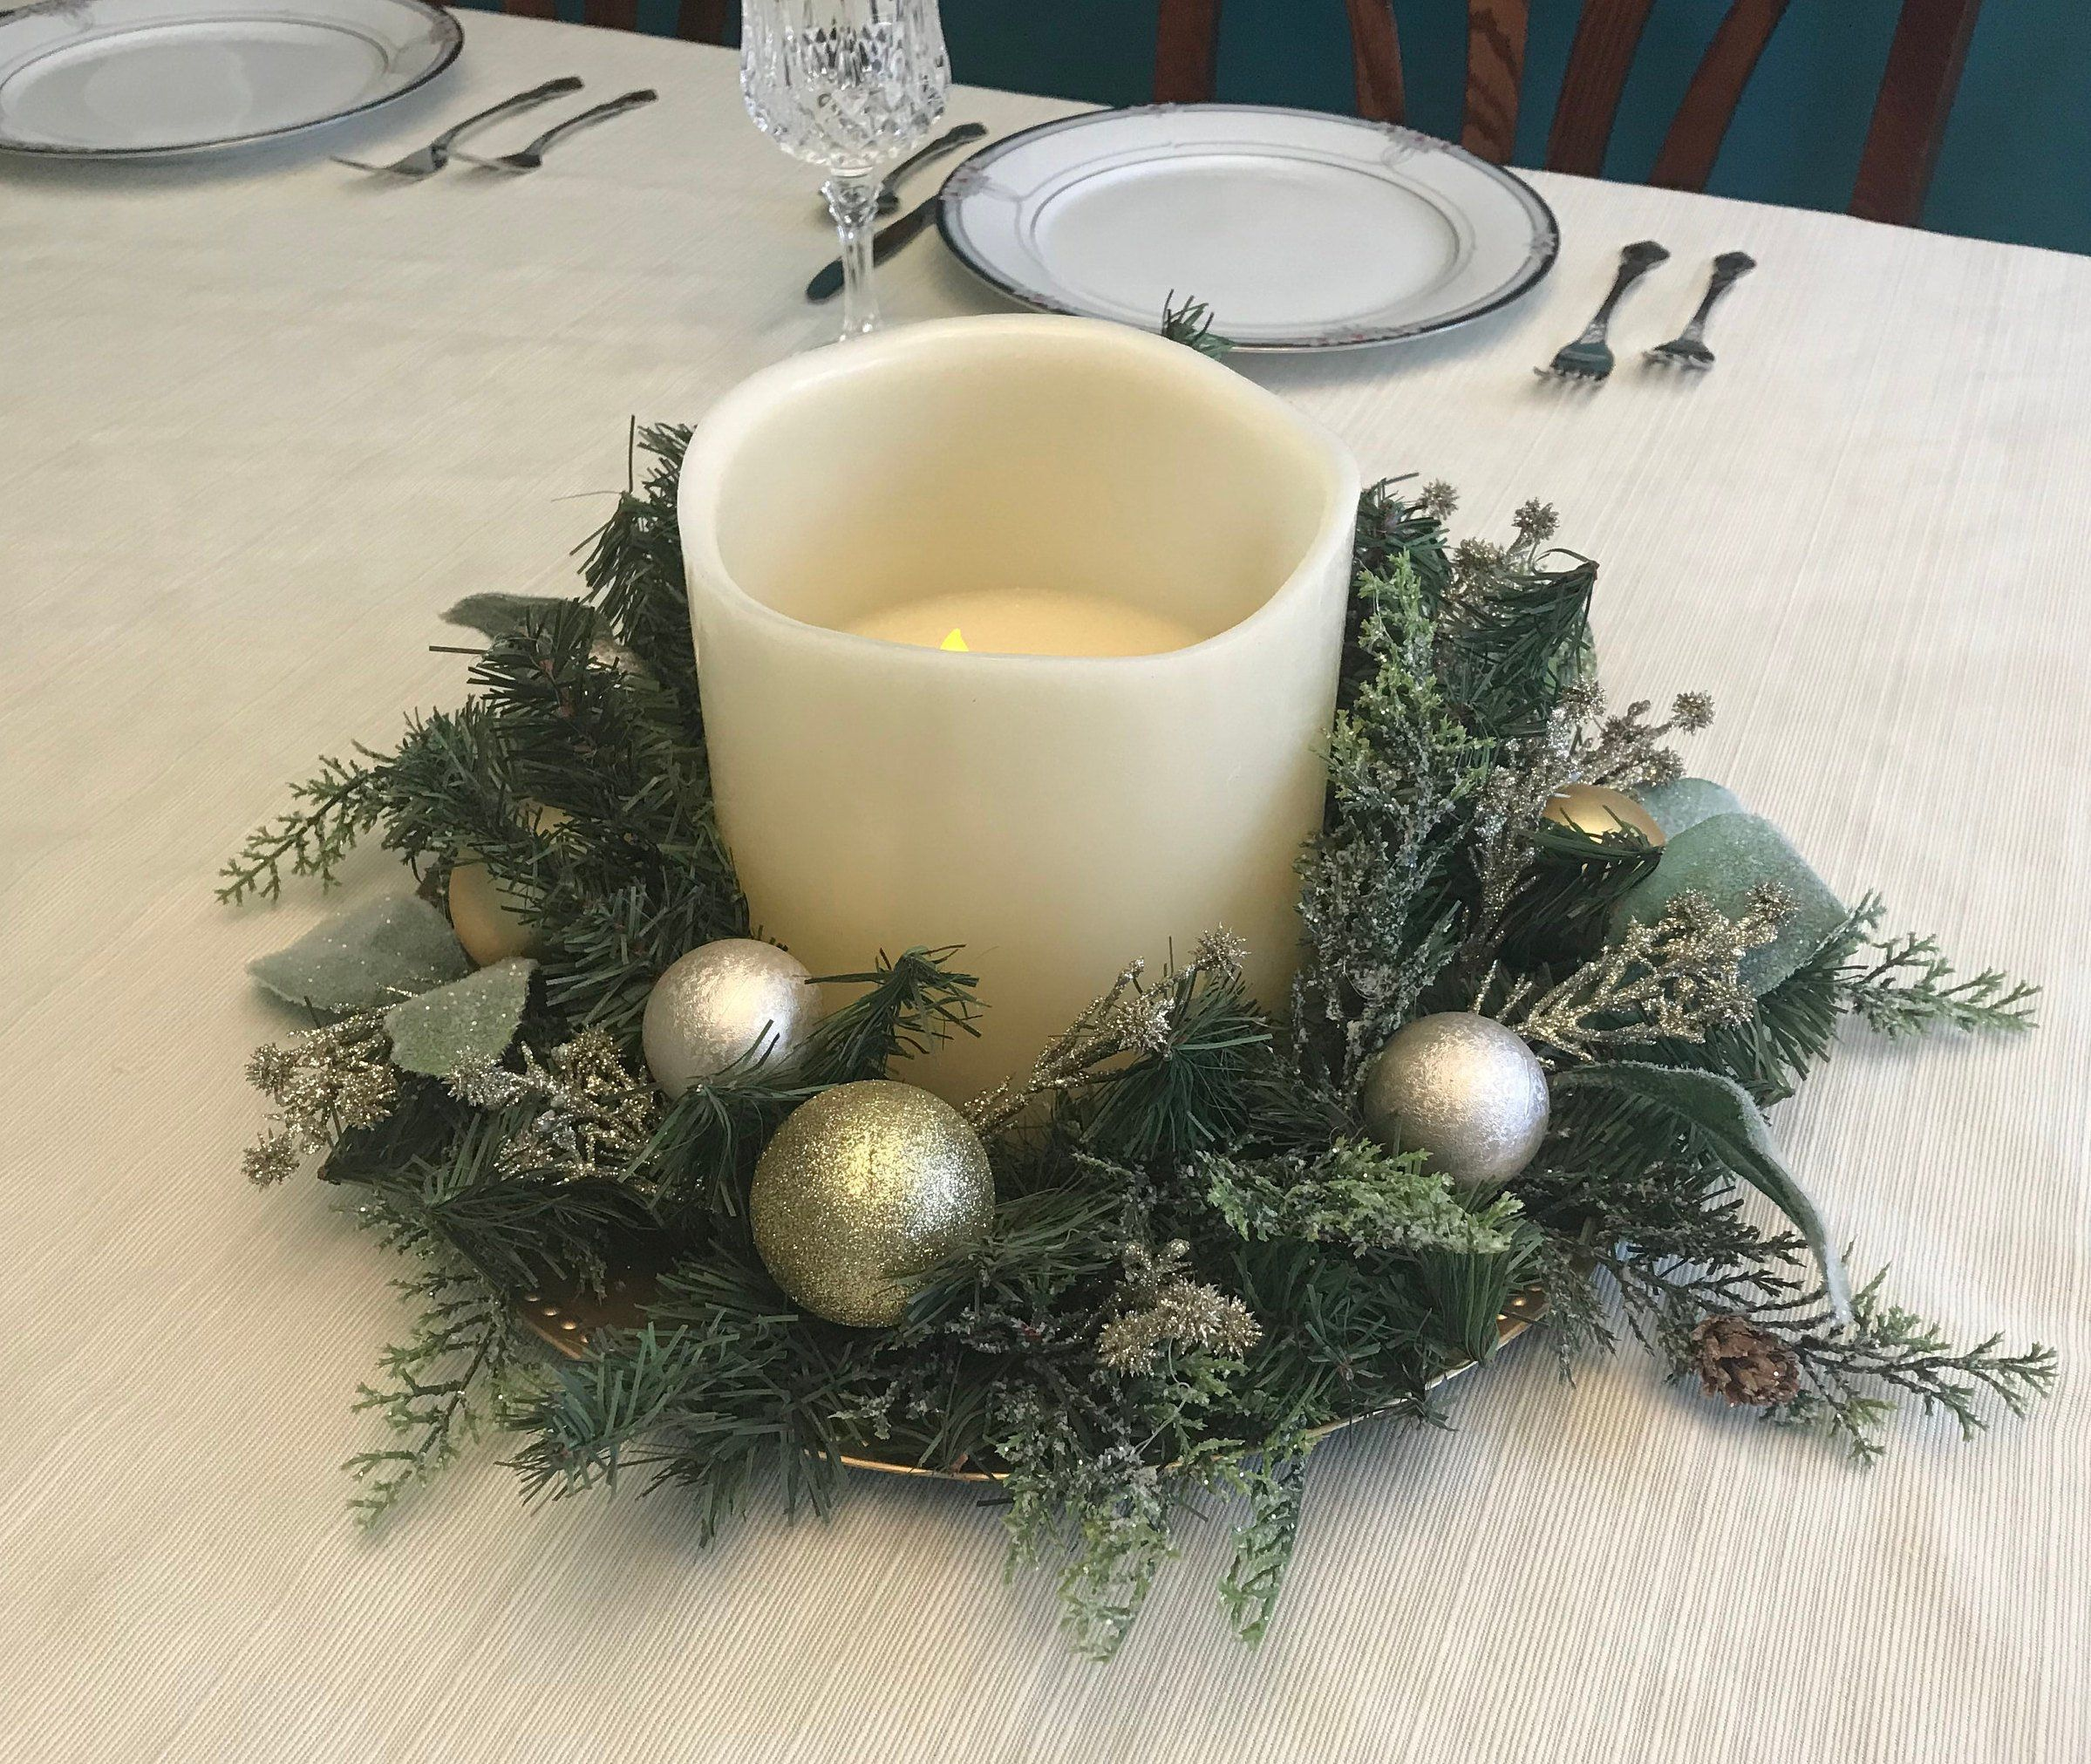 Sparkling Gold Holiday Table Arrangement Flameless Candle Christmas Table Decor Battery Operated Candle Decor Gold Champagne Frosted Leaves Gold Holiday Table Battery Operated Candles Decor Christmas Table Decorations